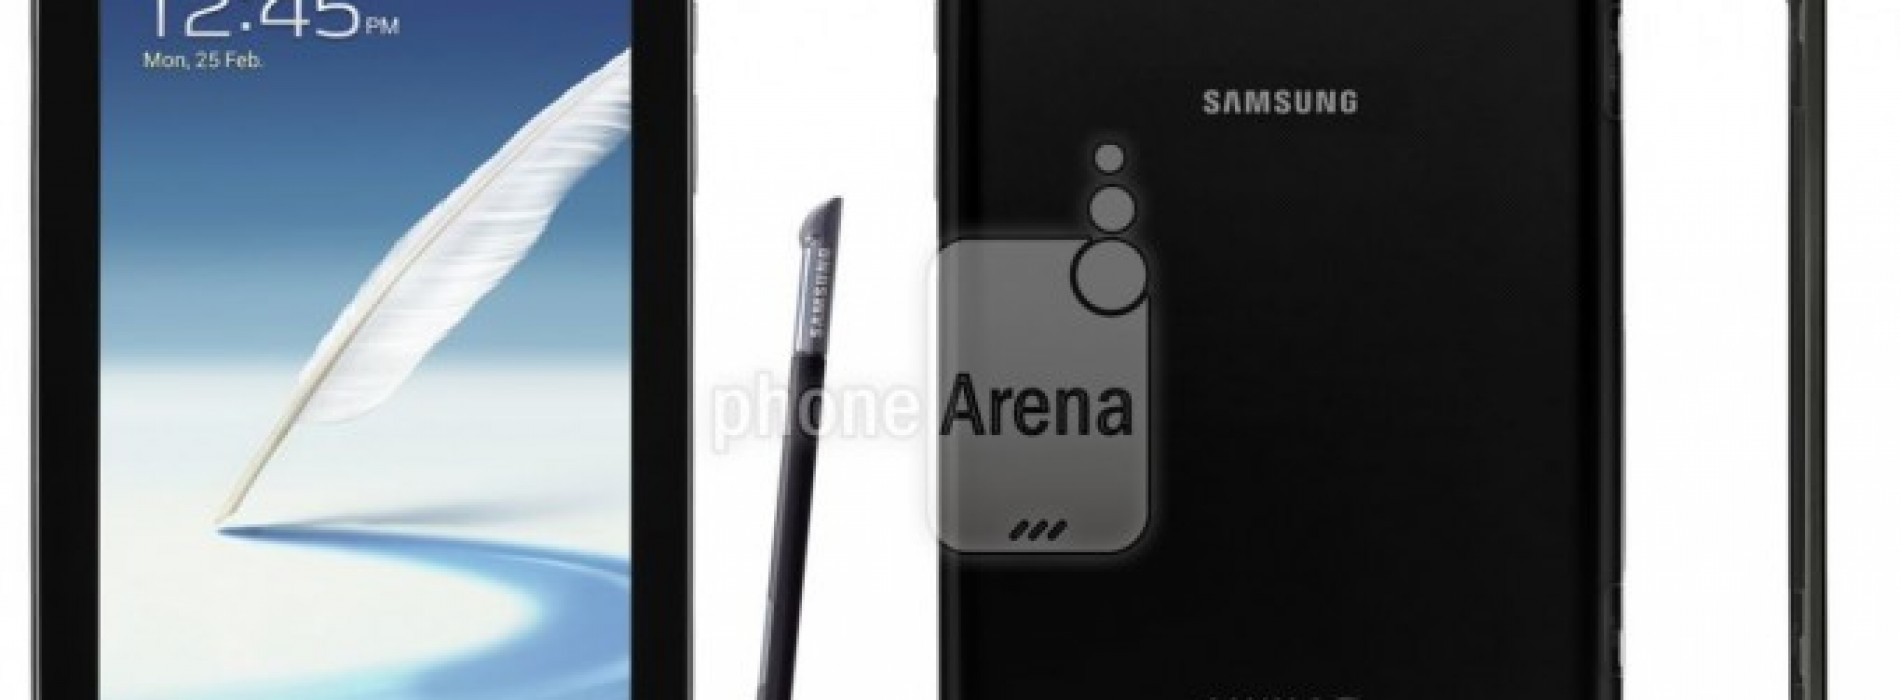 Charcoal Black Samsung Galaxy Note 8.0 leaked in images